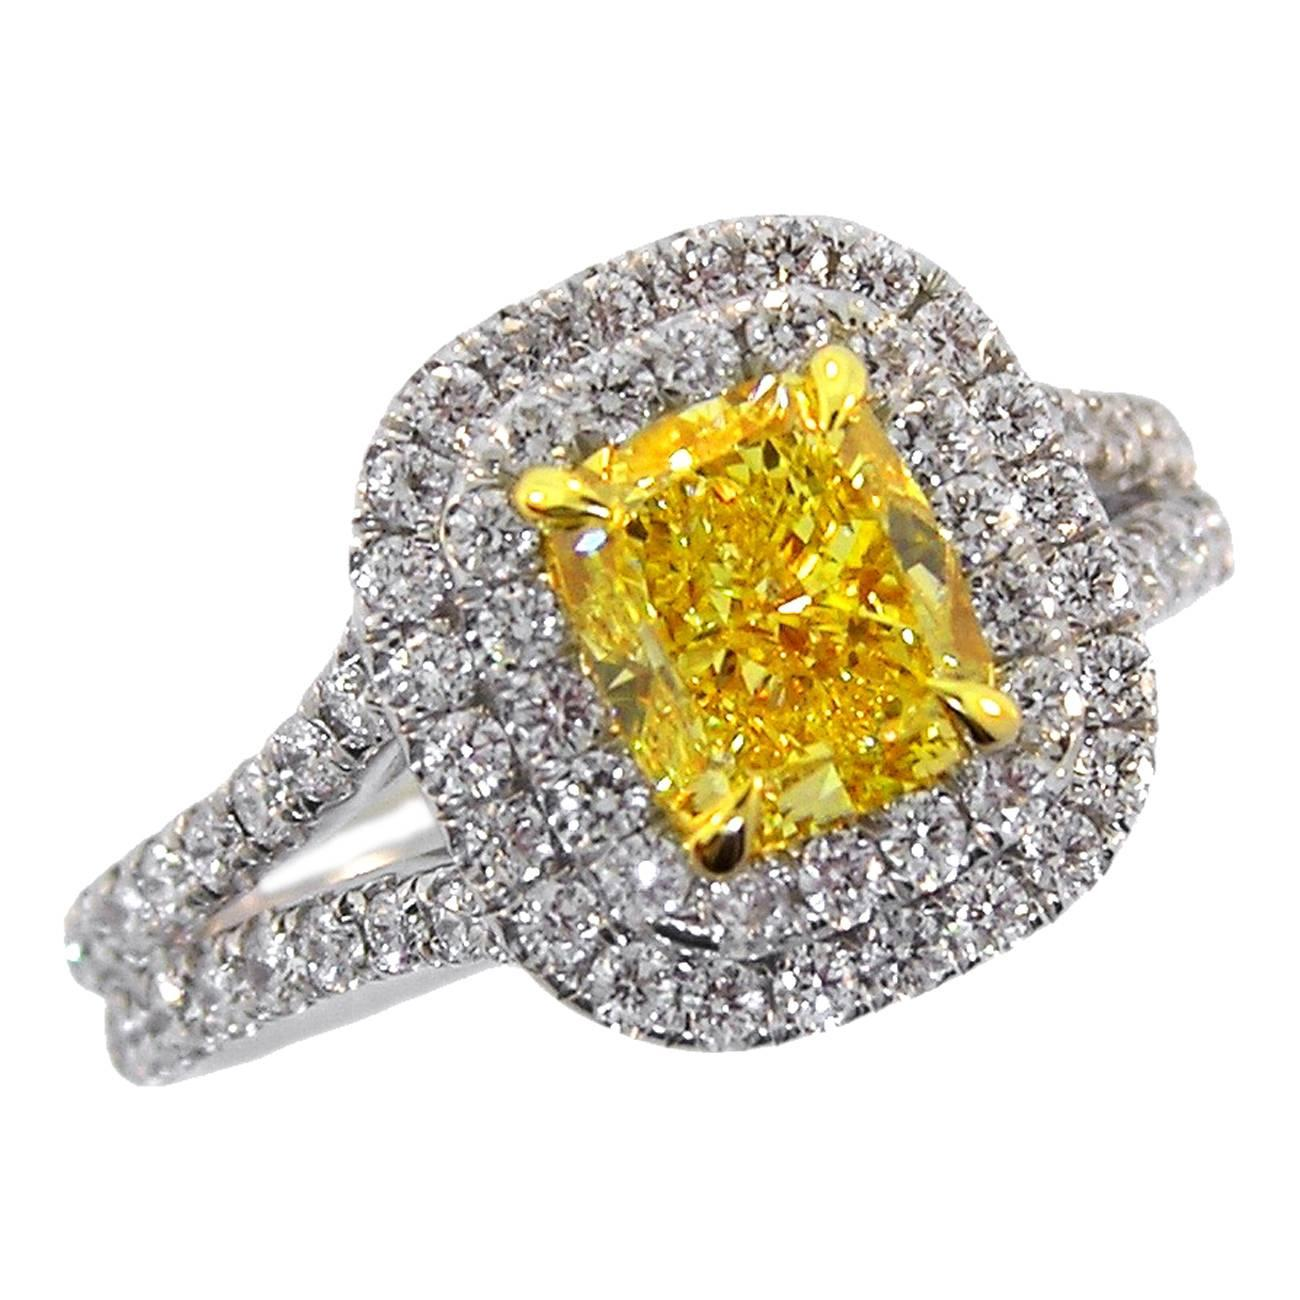 images ring on best pinterest diamond stunning settings carat fancy yellow canary rings